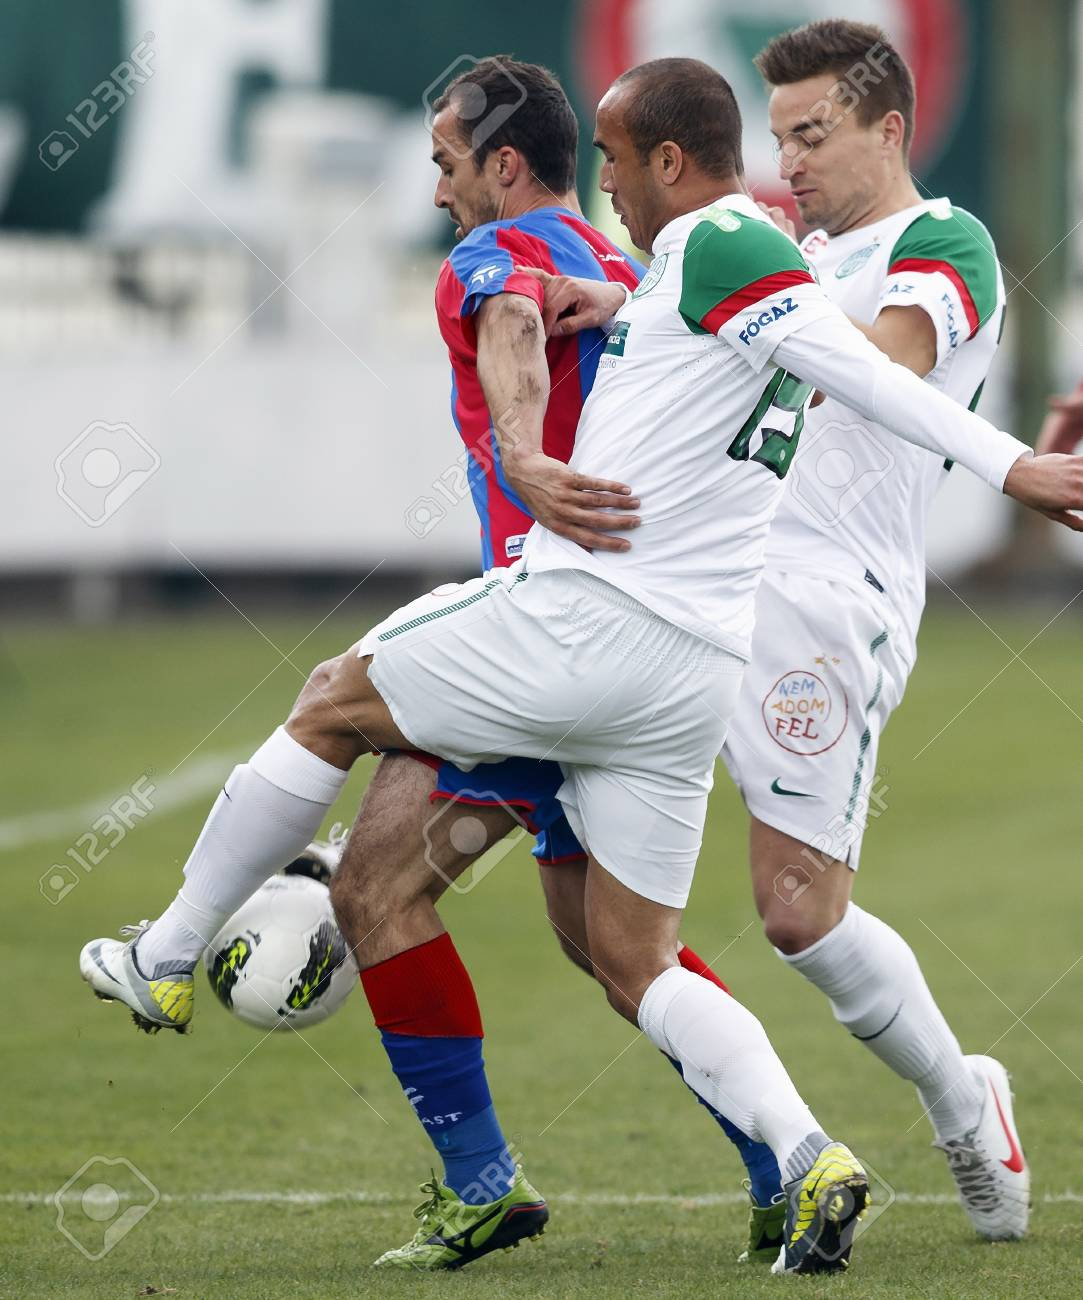 BUDAPEST - March 31: Dajic of Vasas (L) between Junior (M) and Kulcsar (R) of FTC during FTC vs. Vasas Hungarian OTP BANK League football game at Albert Stadium on March 31, 2012 in Budapest, Hungary. Stock Photo - 12935753